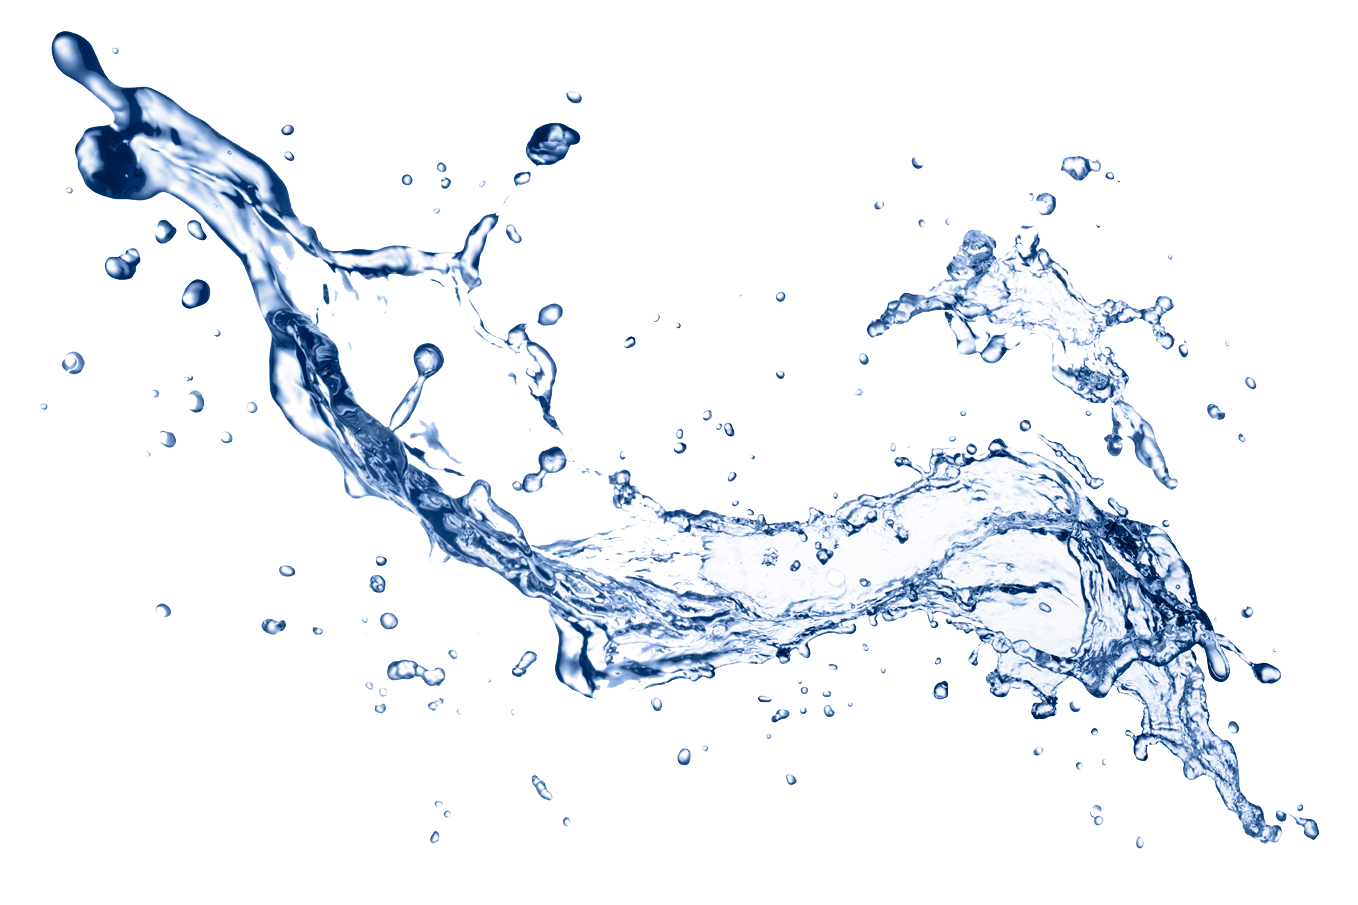 Water png images. Transparent pictures free icons